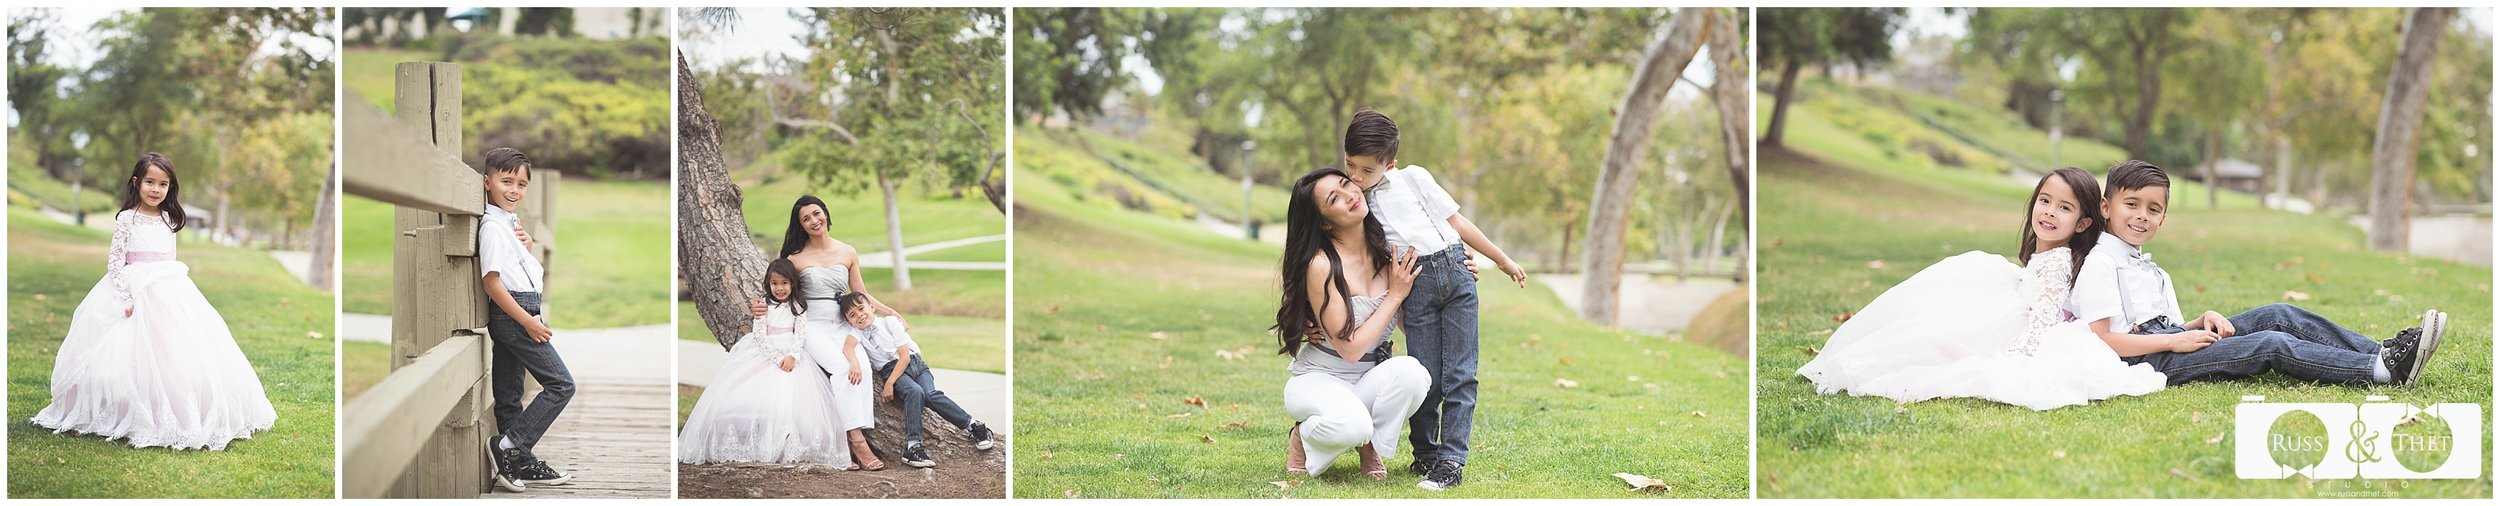 La-Mirada-Creek-Park-Family-Maternity-Kids-Portraits (5).jpg